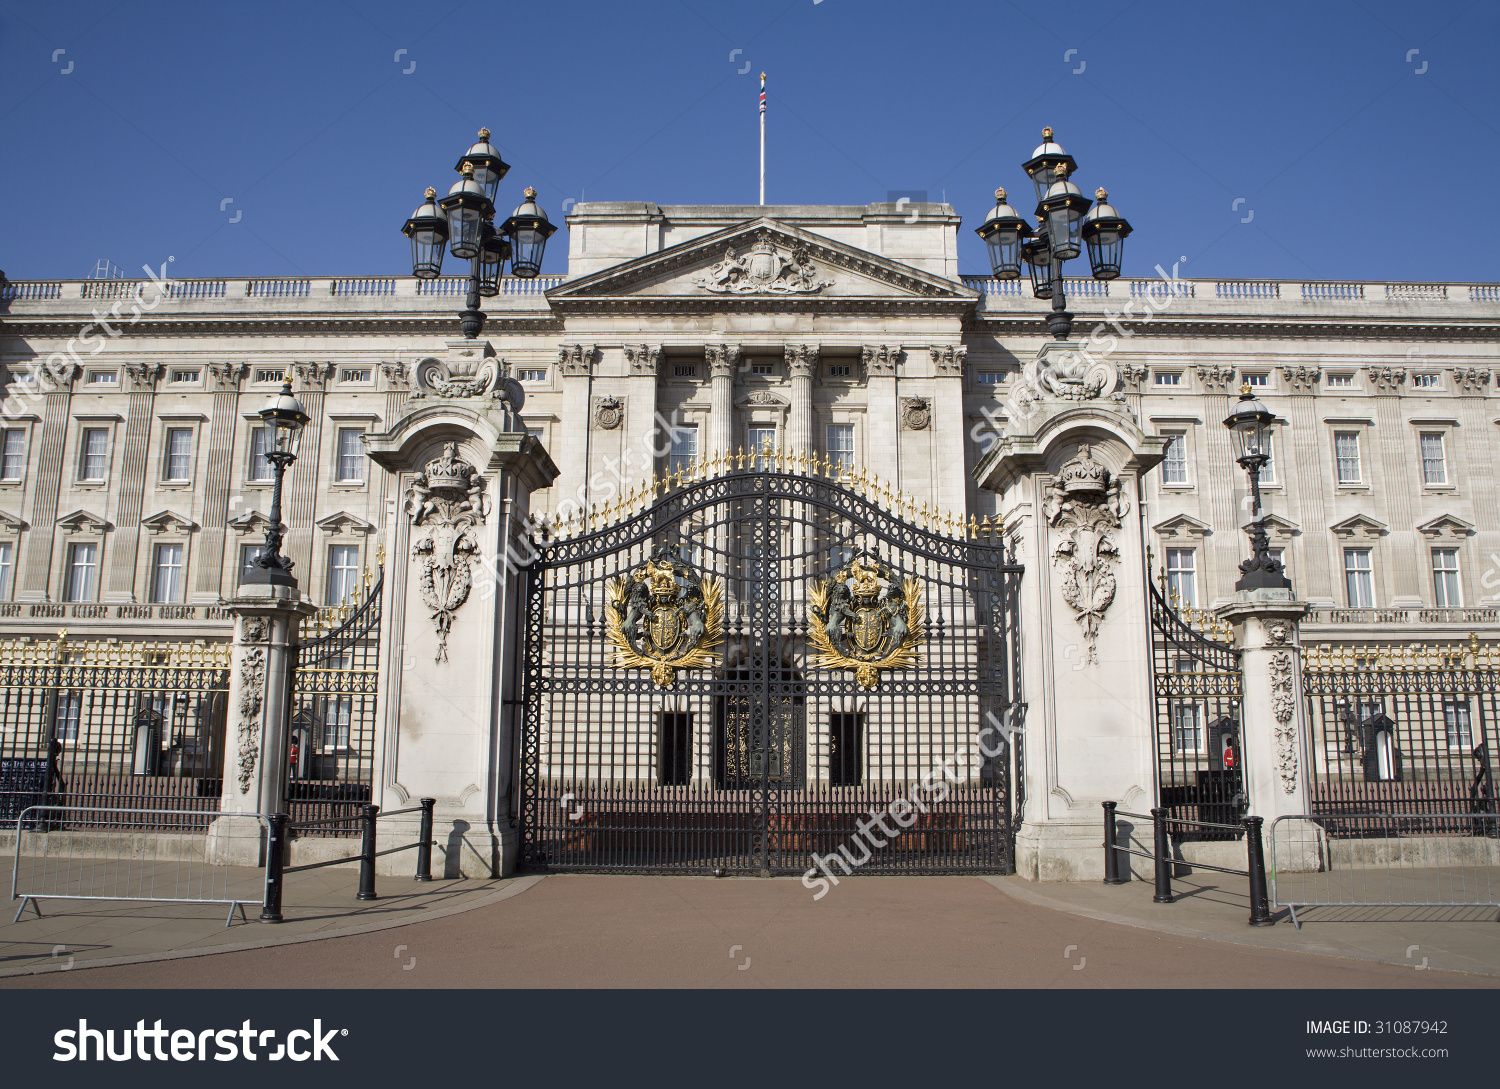 London Buckingham Palace Gate Stock Photo 31087942.